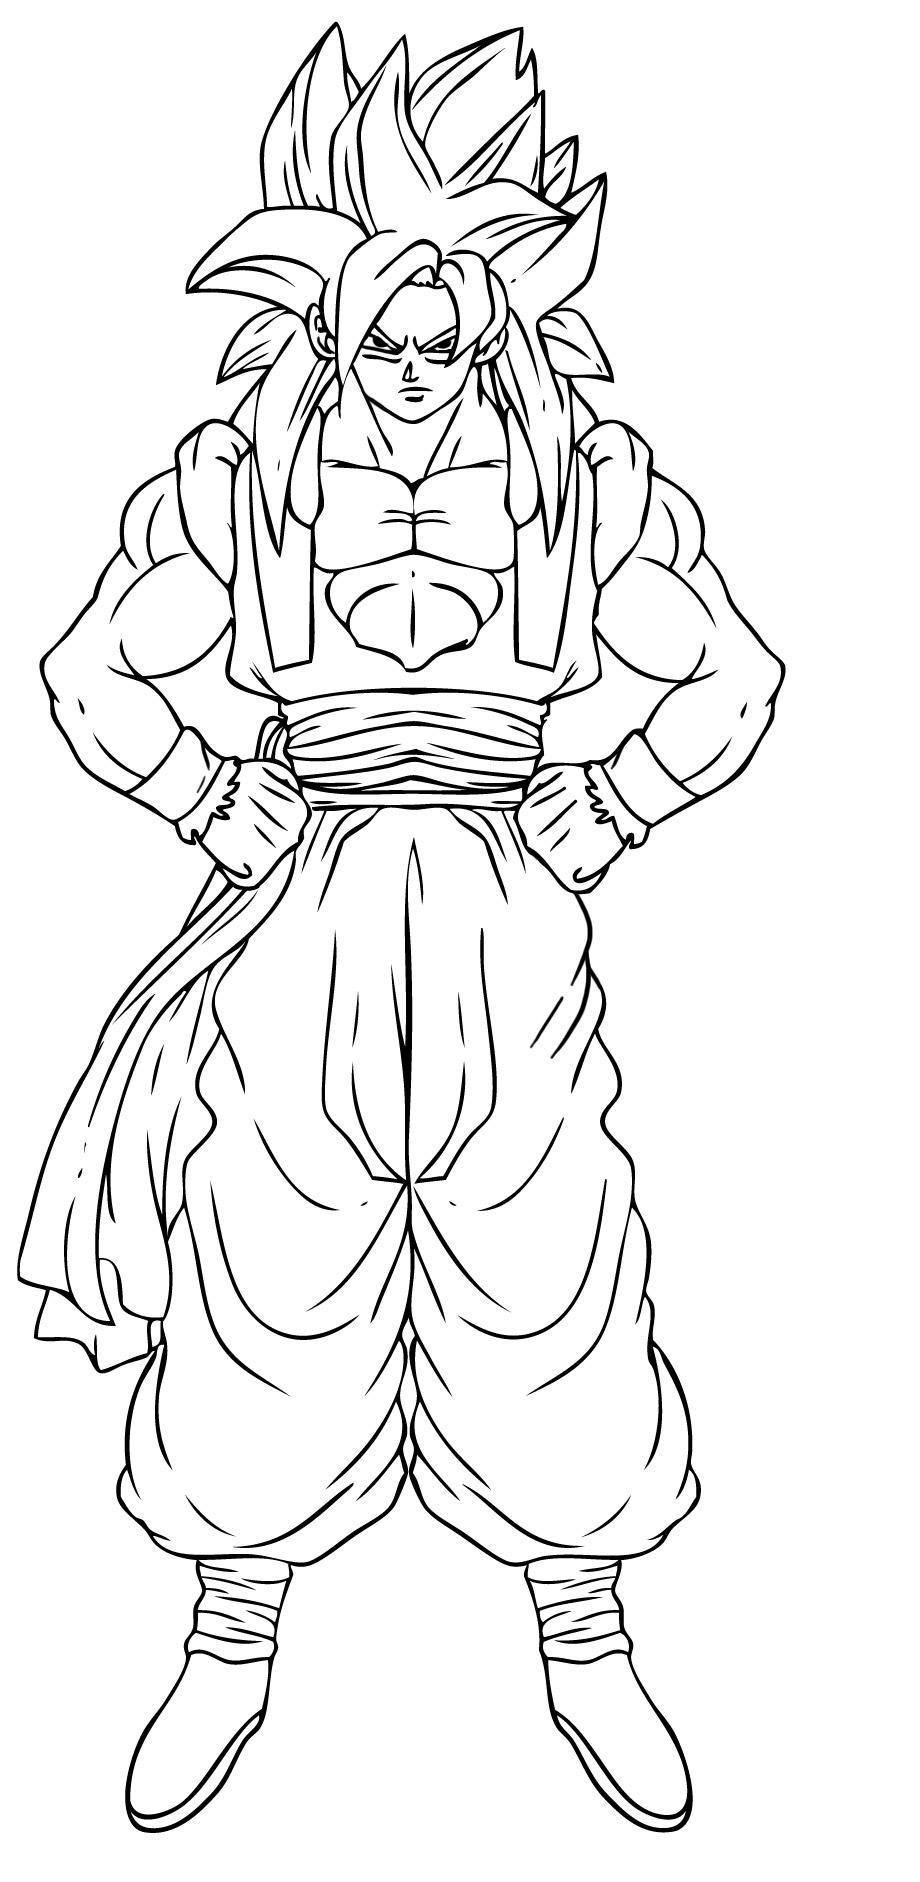 Goku coloring pages to download and print for free - Dessin sangoku ...